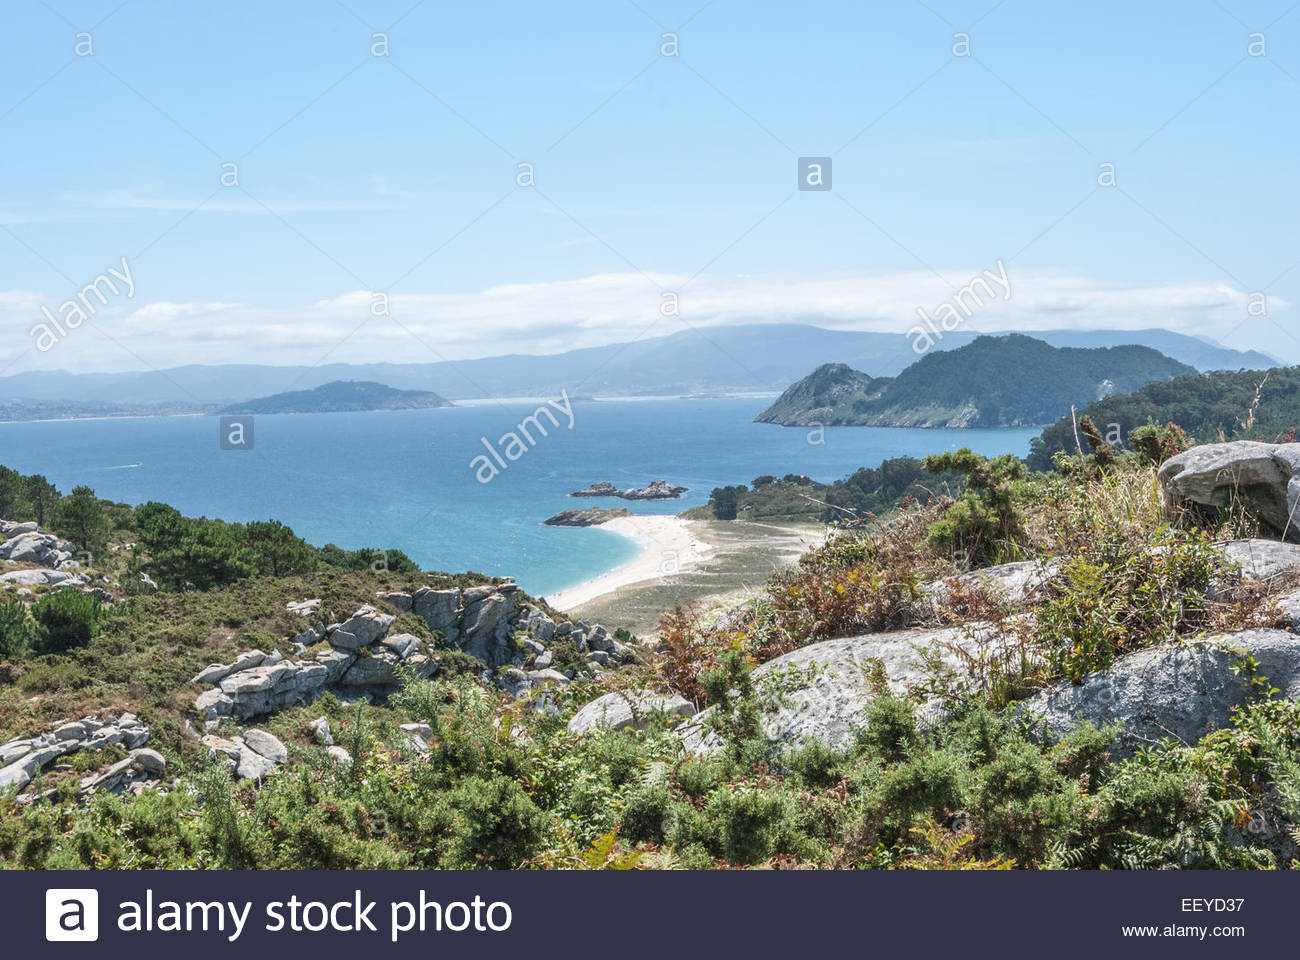 "Image result for galicia "" image"